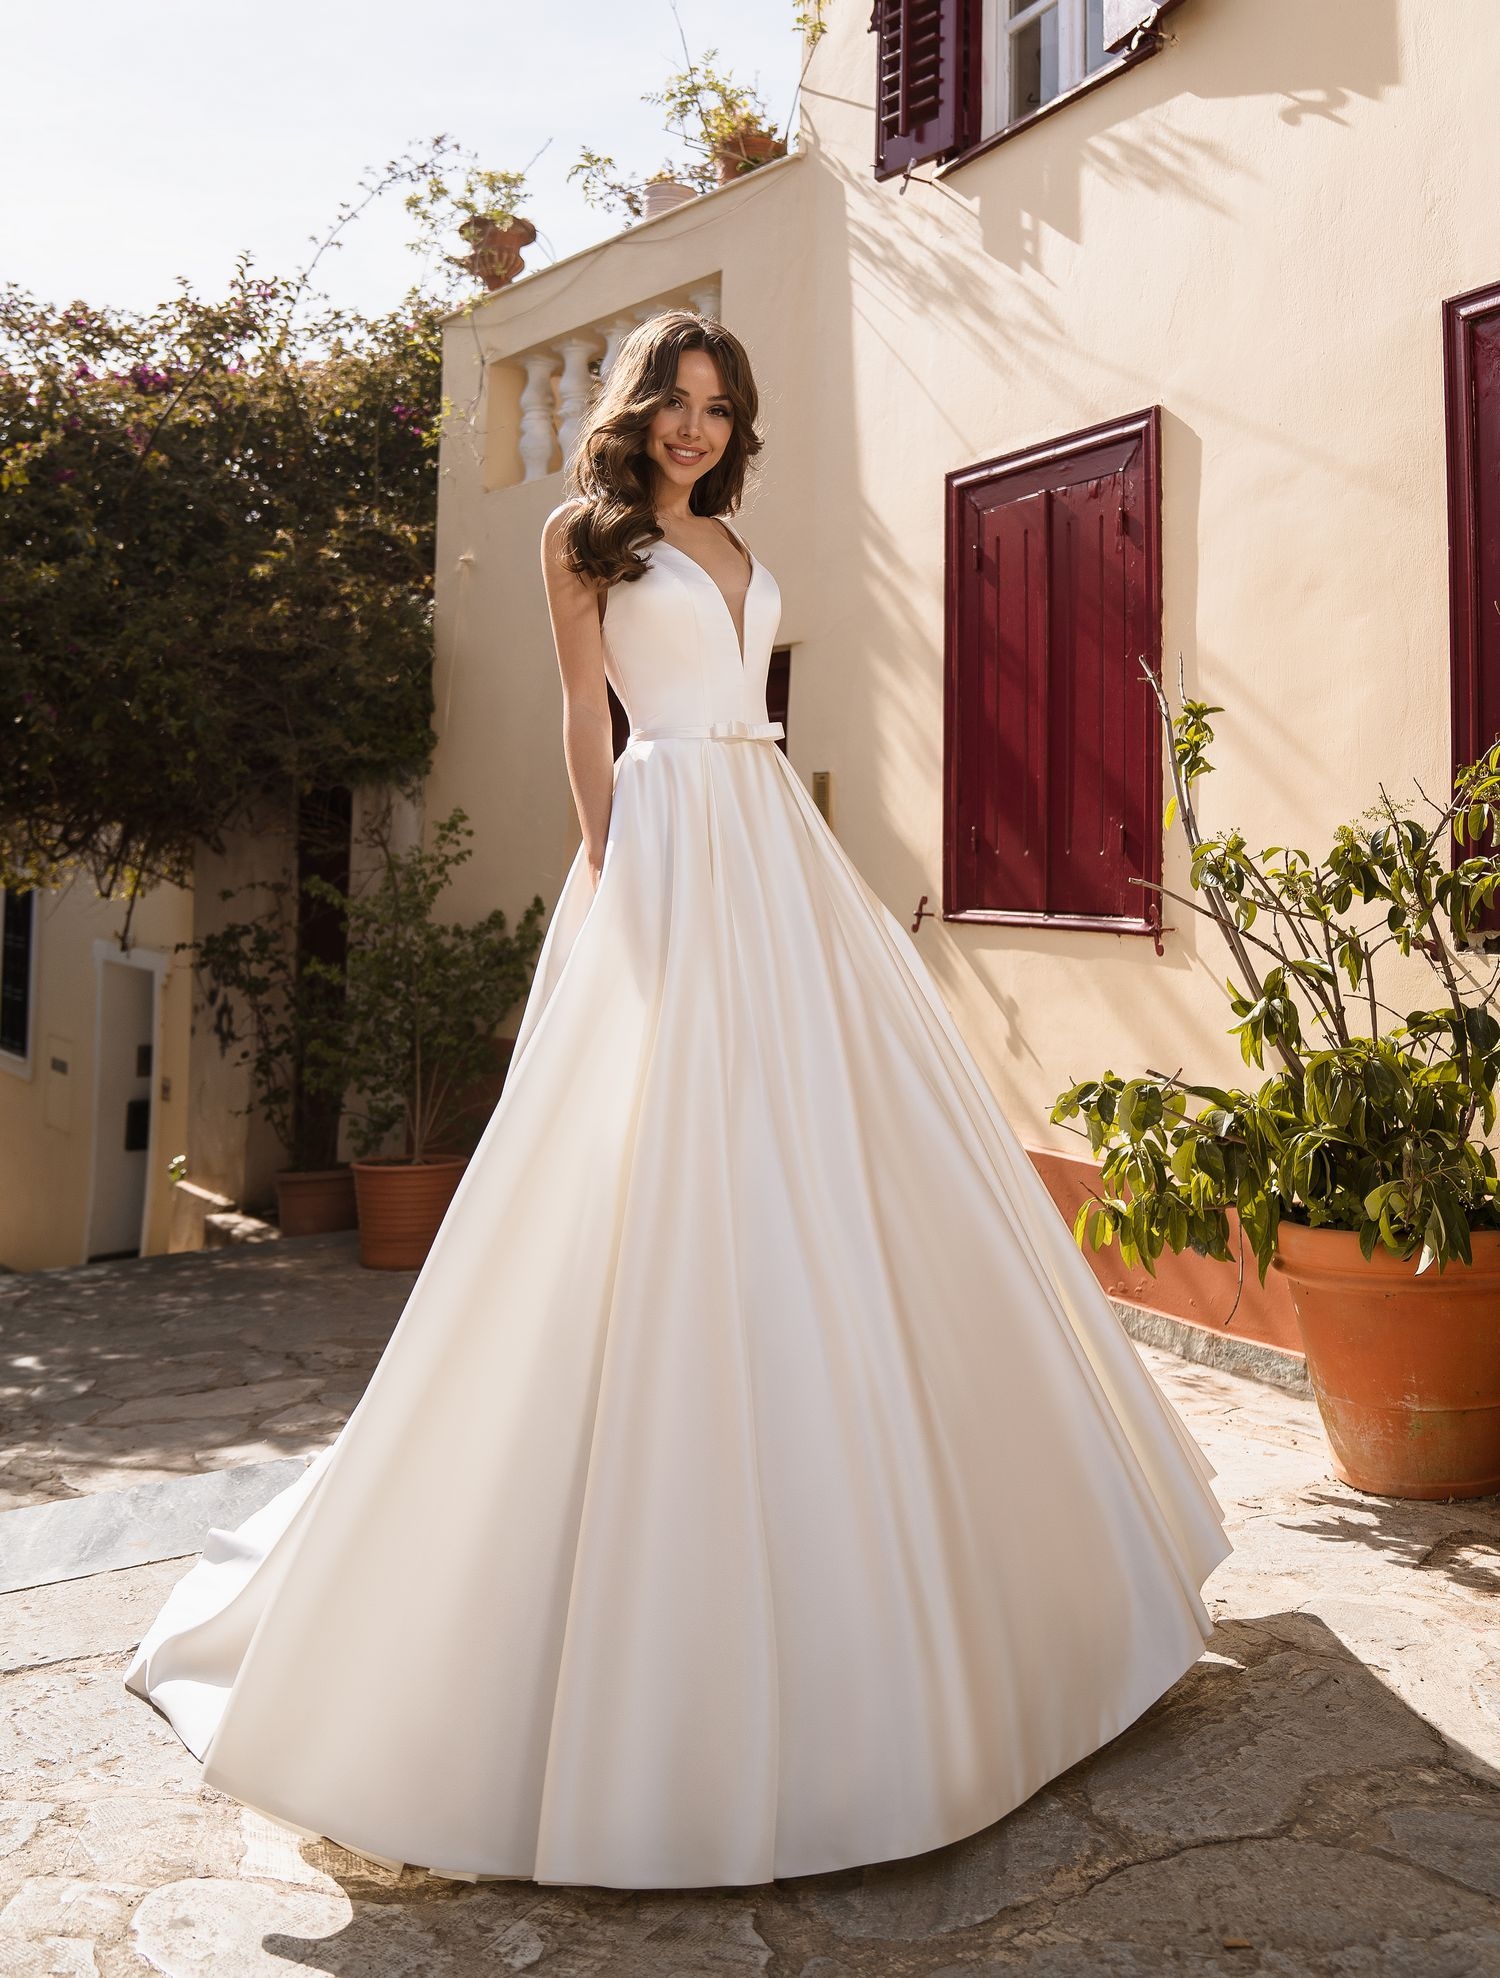 Wedding dress from Royal satin from Supernova wholesale-1